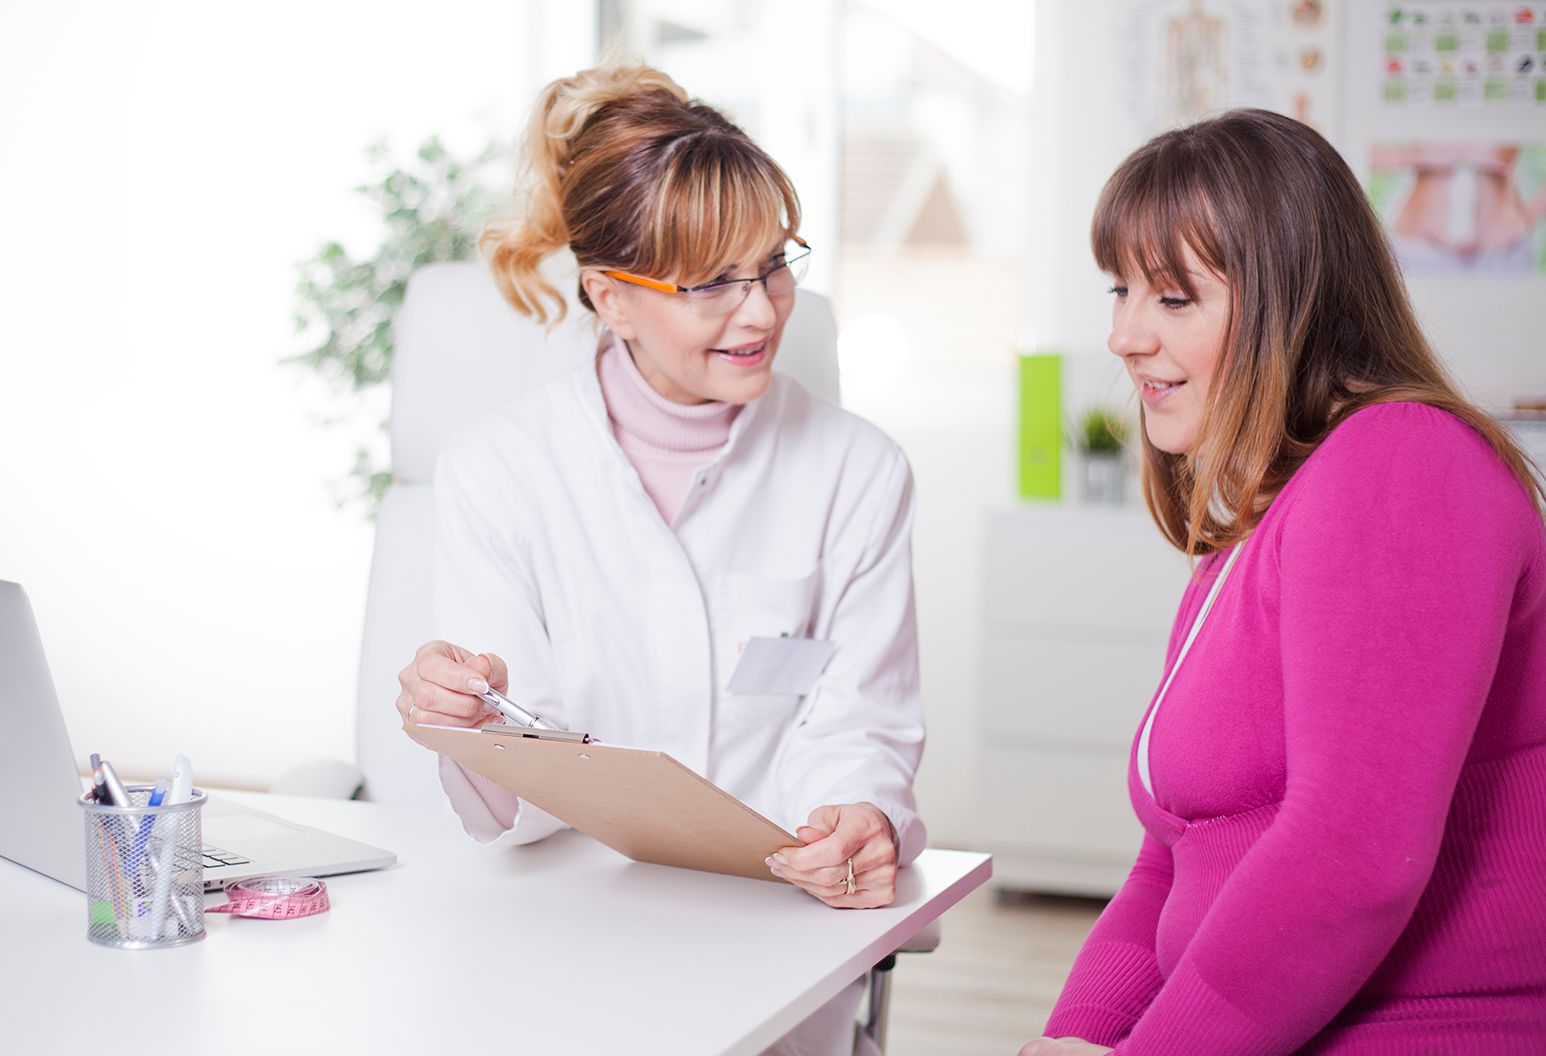 Female doctor wearing white lab coat is sitting at a desk showing a medical chart to a female patient wearing a pink sweater